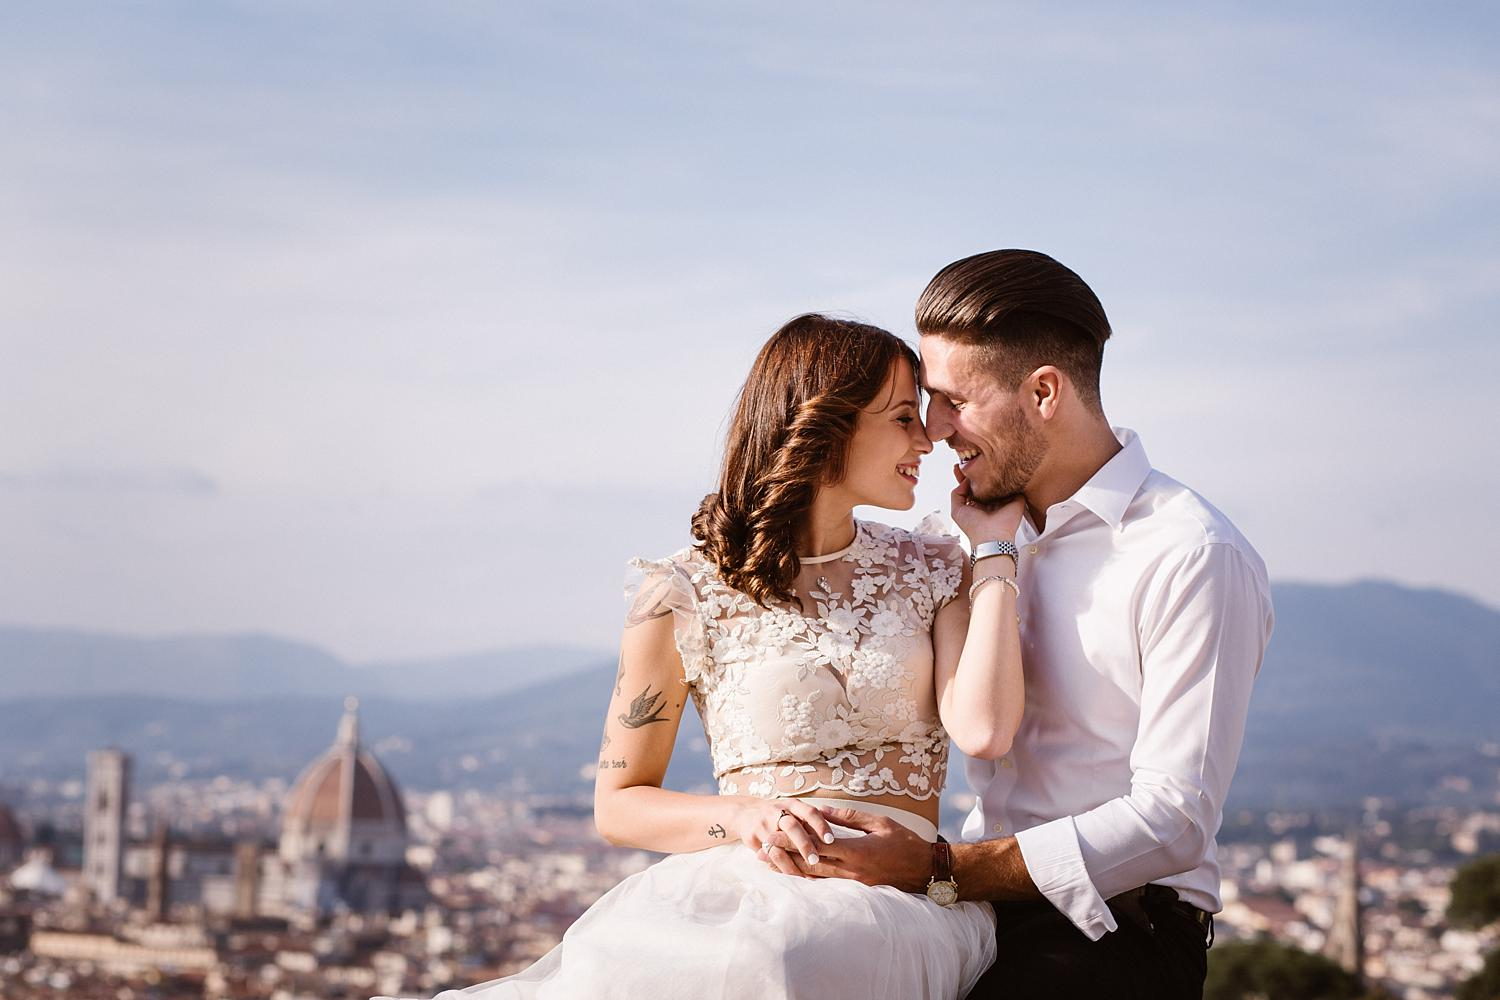 weddingphotographer florence 35 - Maddalena & Arturo - A Chic Anniversary Session in Florence